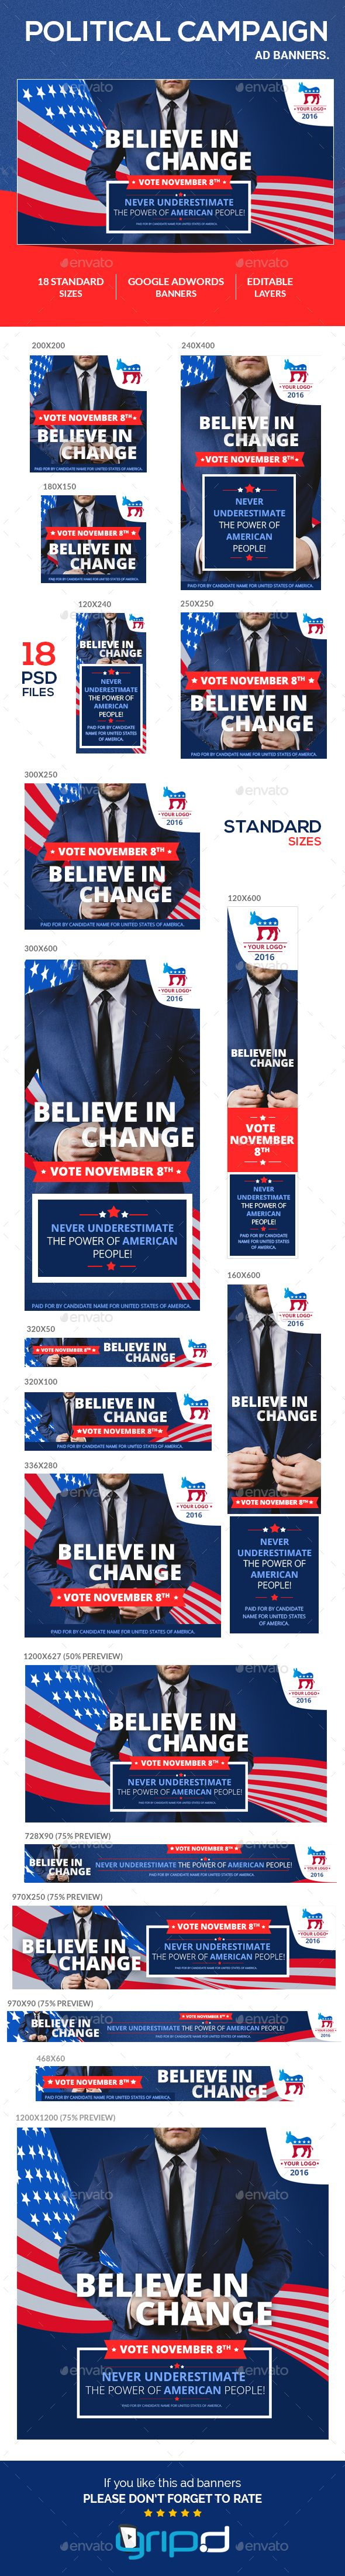 Political Campaign Banner Ads - Banners & Ads Web Elements